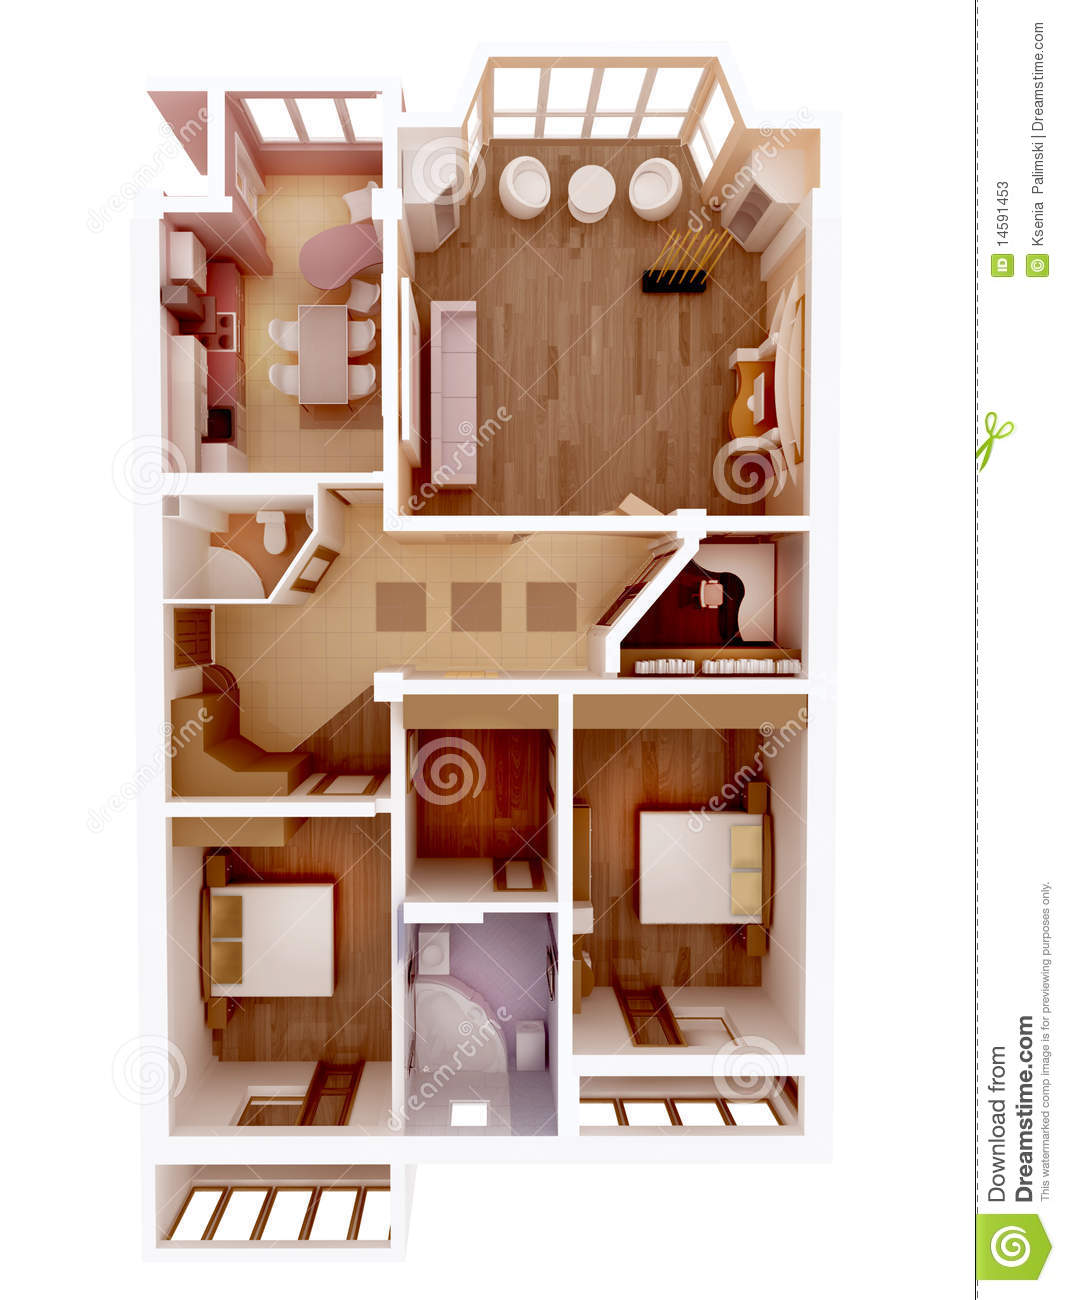 Bedroom House Blueprint